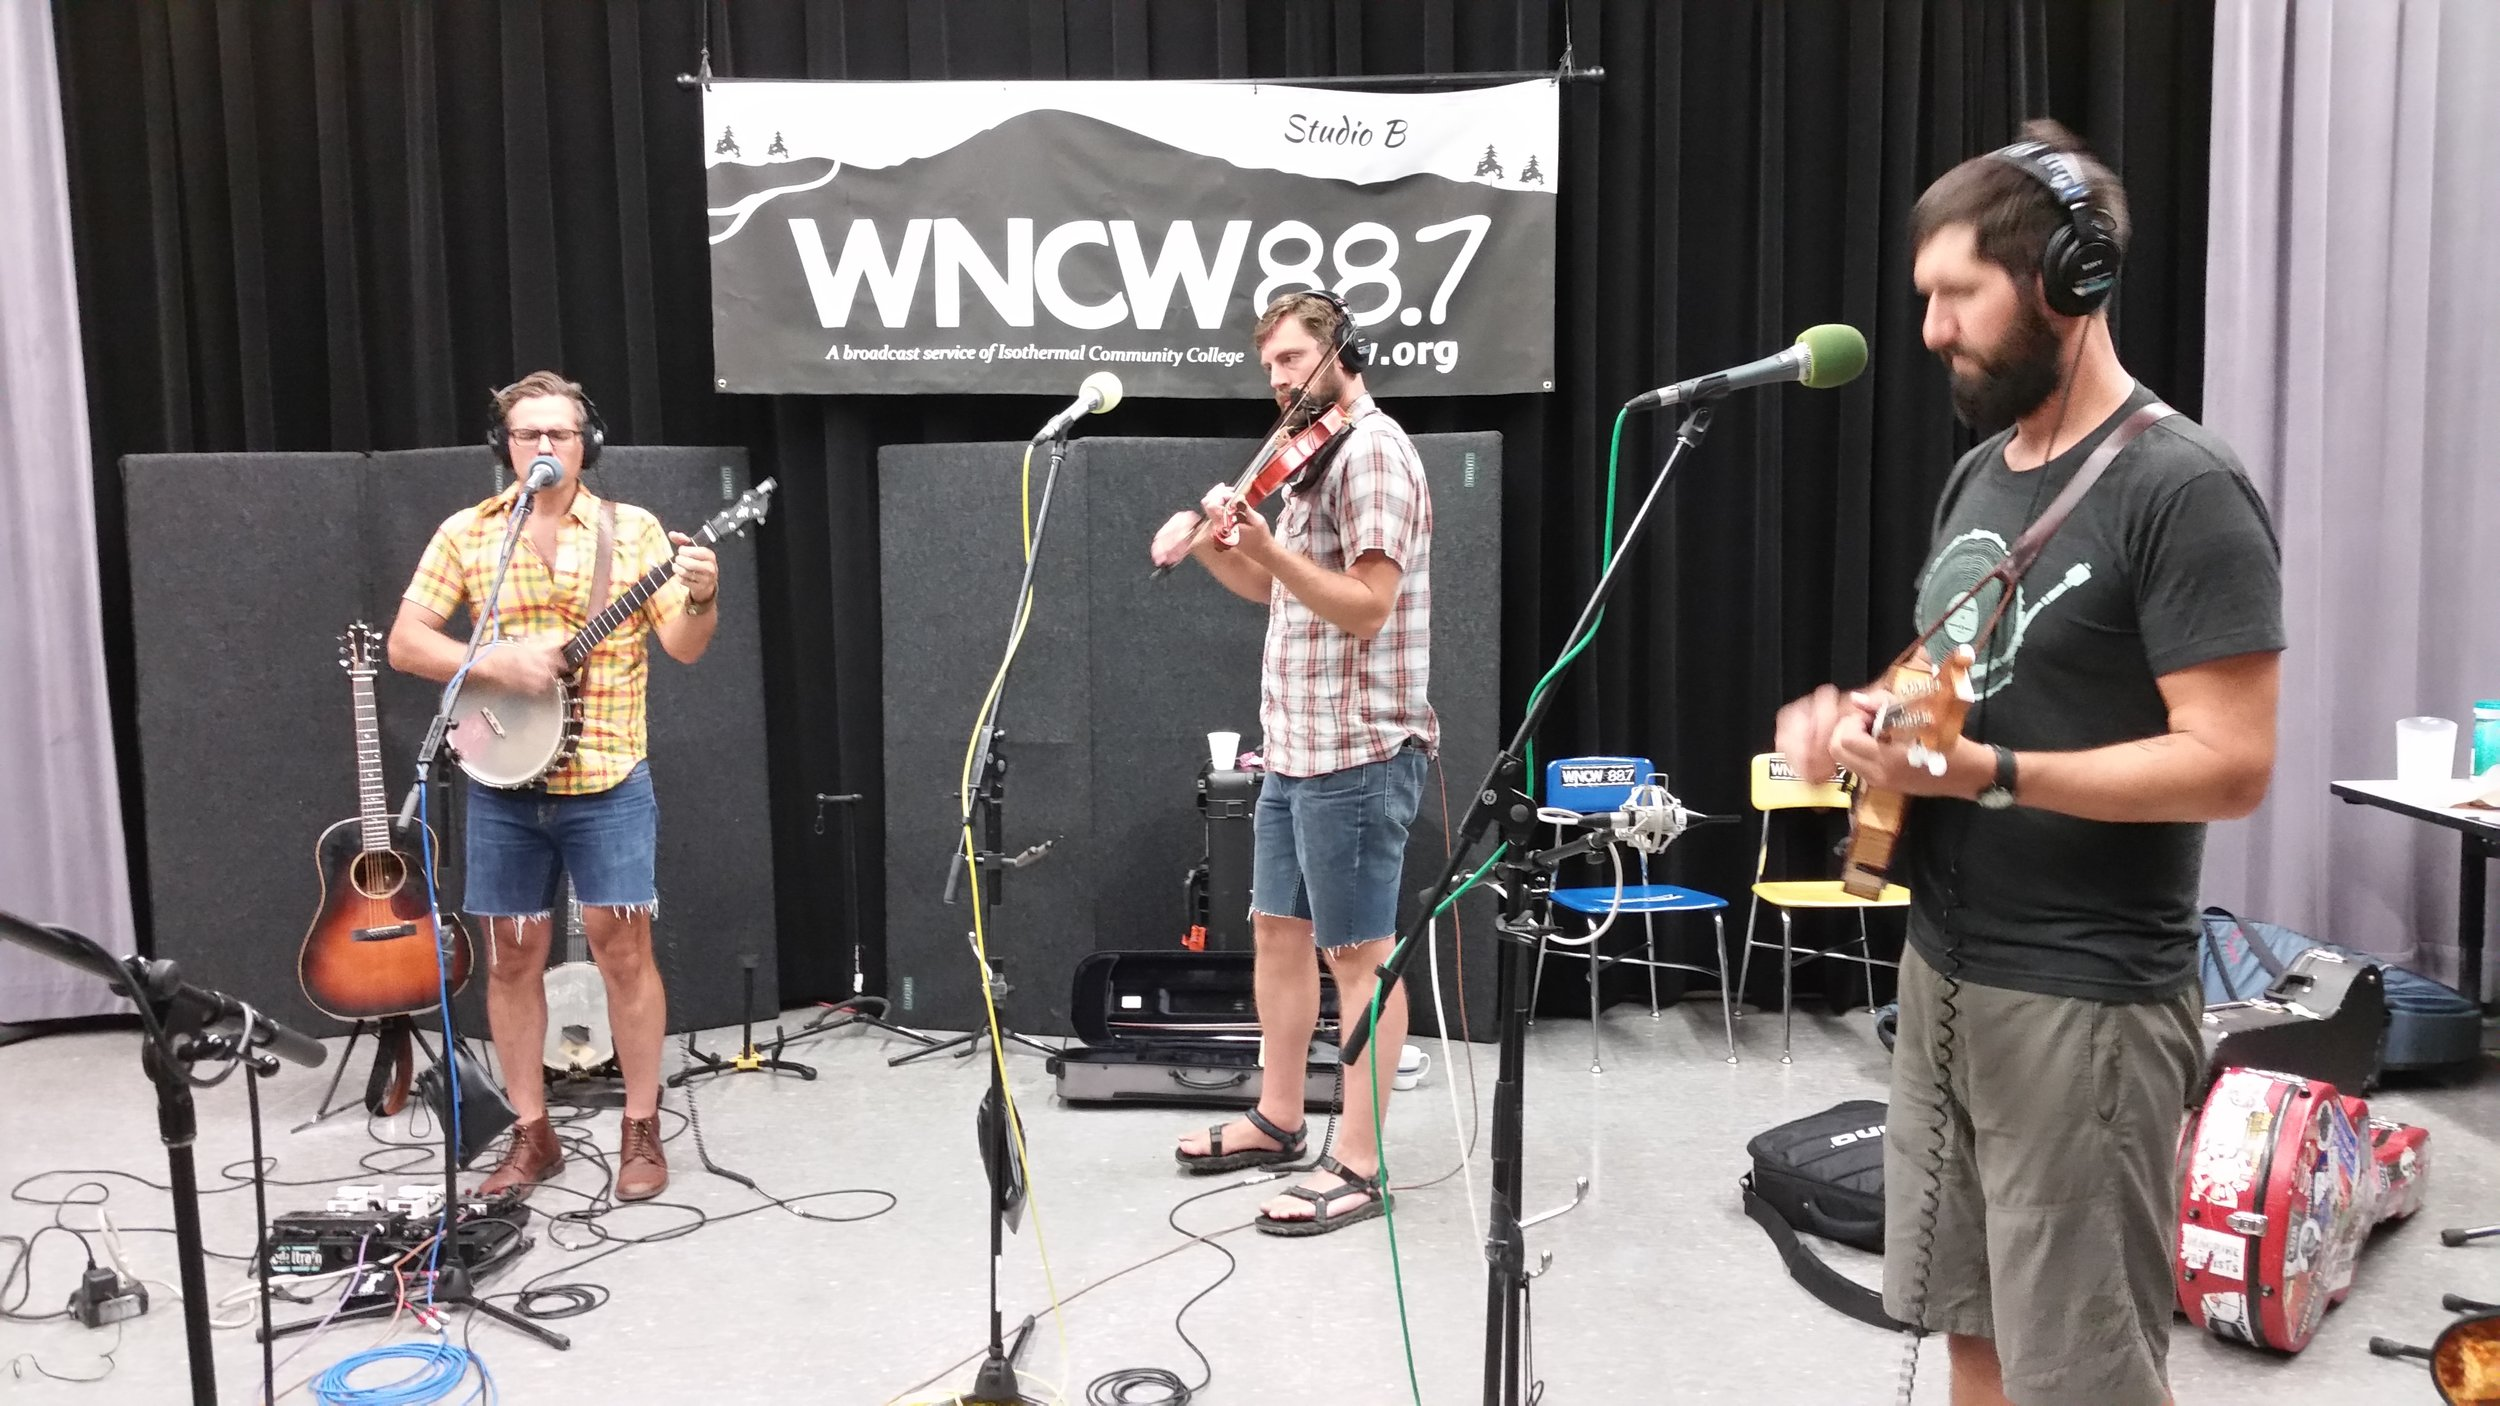 Fresh off of their festival Red Wing, The Steel Wheels visit WNCW